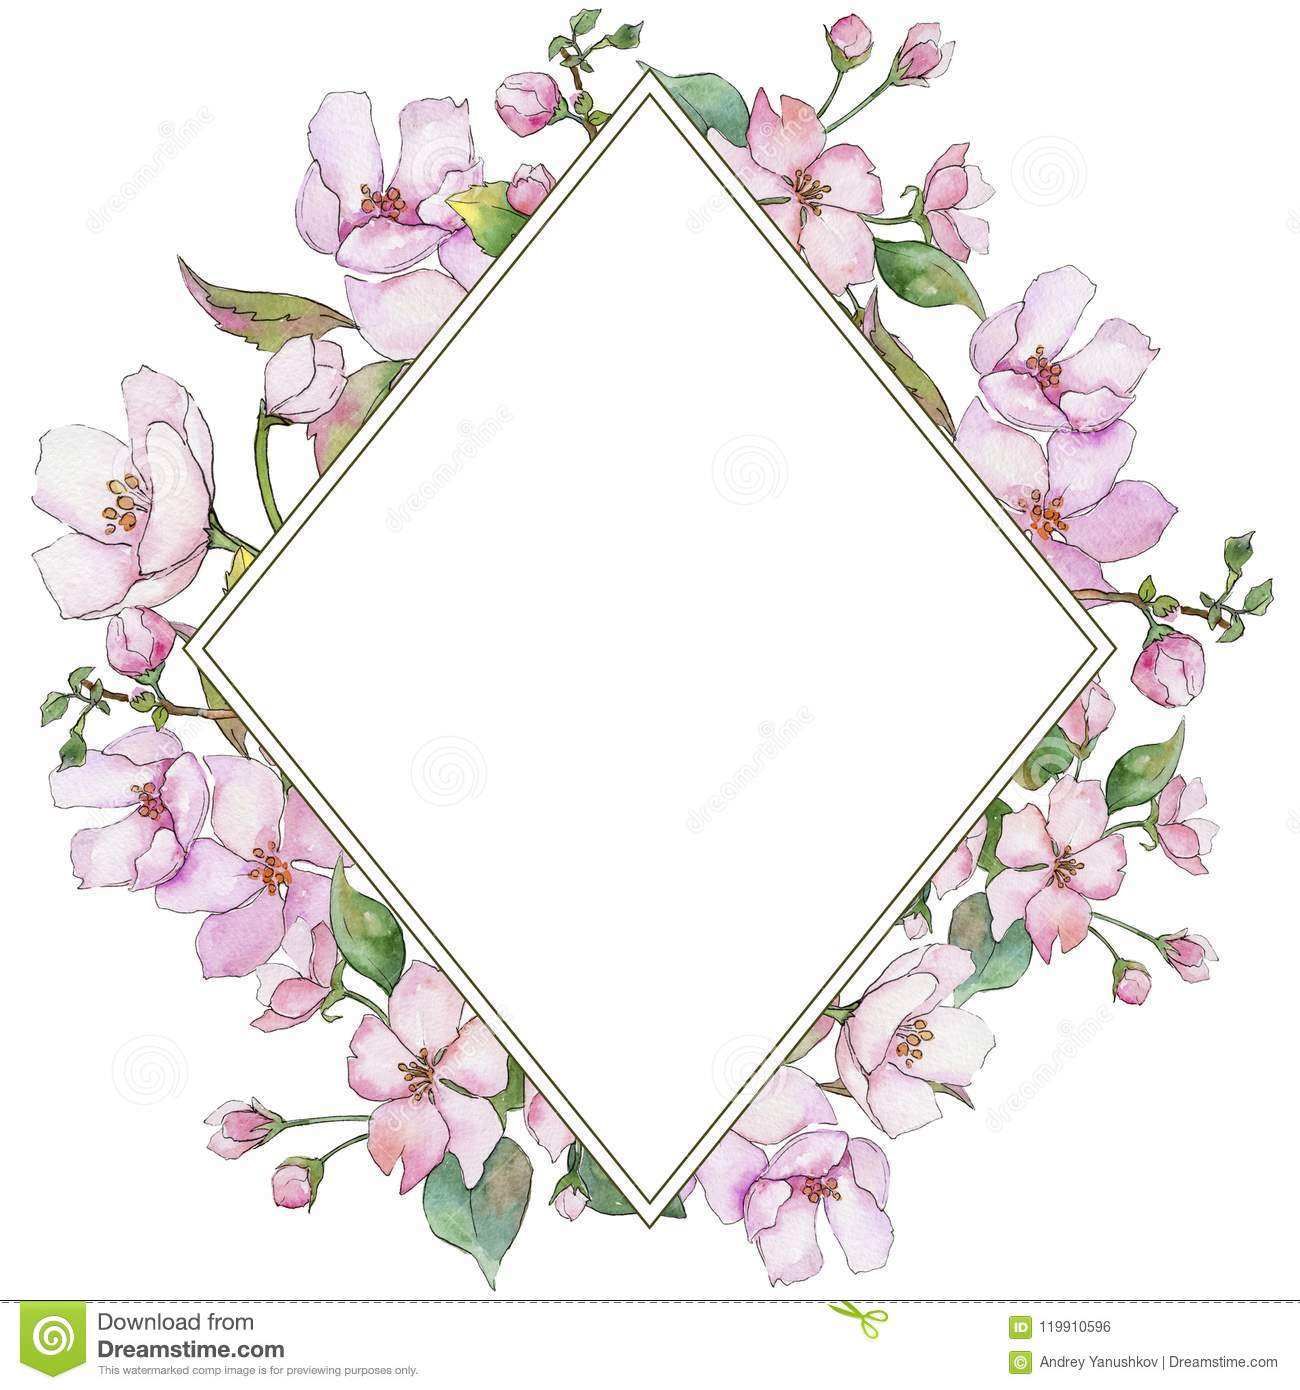 Pink Cherry Blossoms Floral Botanical Flower Frame Border Ornament Square Stock Illustration Illustration Of Paint Drawing 119910596